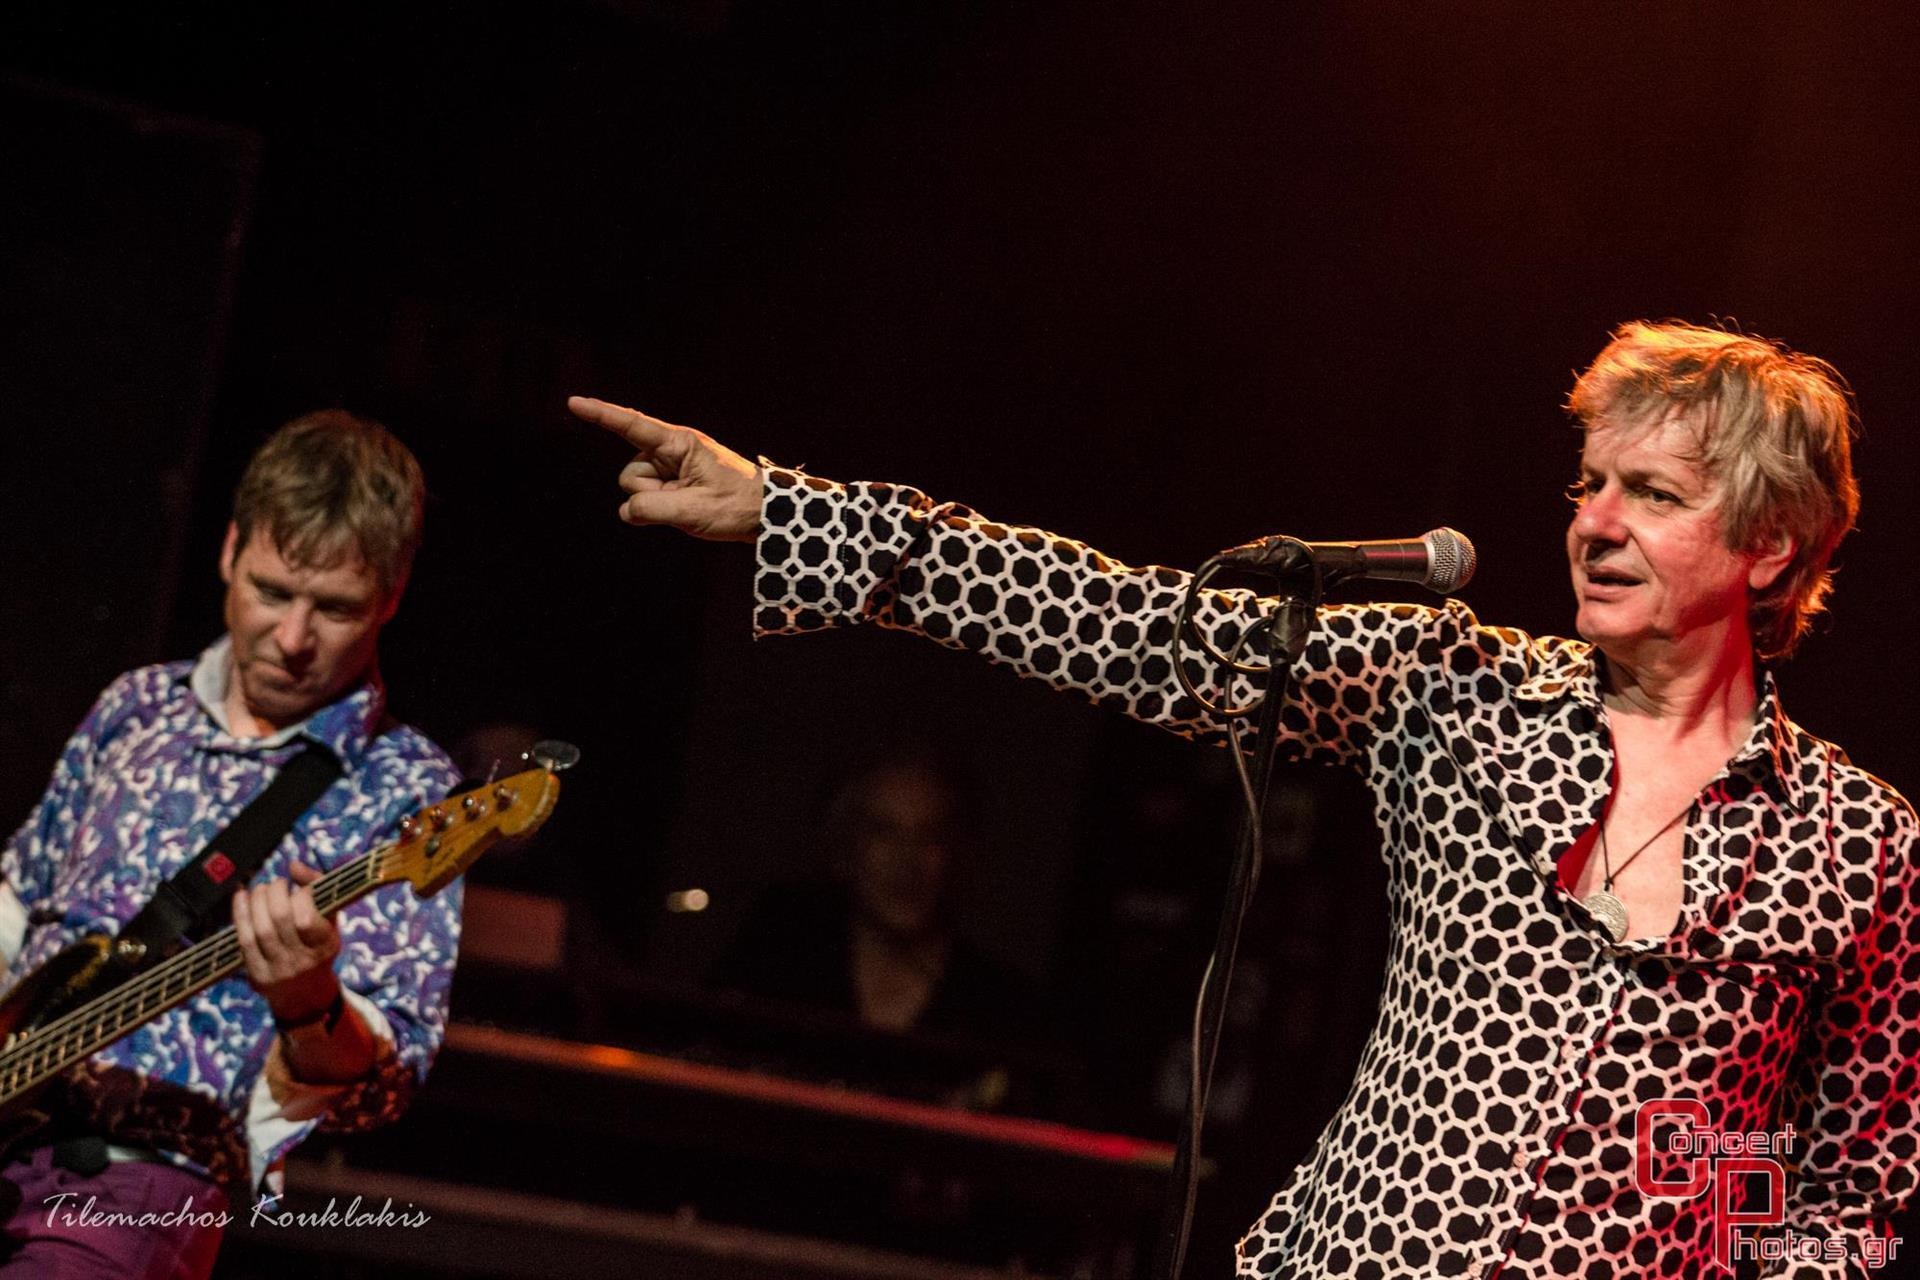 The Fleshtones - Dirty Fuse - The Statycs-The Fleshtones - Dirty Fuse - The Statycs photographer:  - IMG_8369